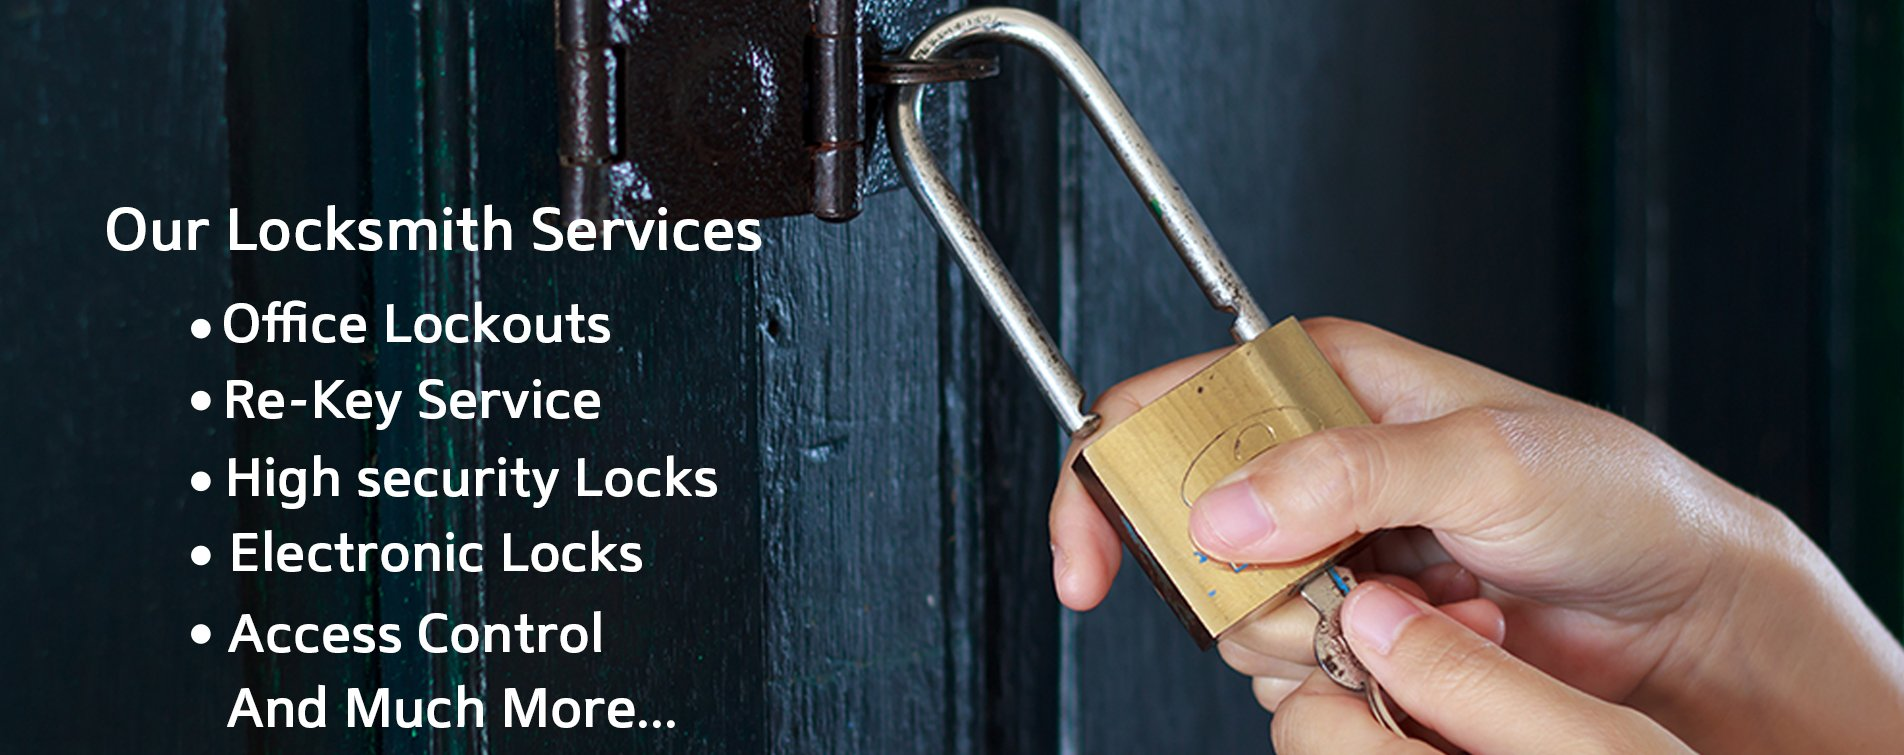 Los Angeles Affordable Locksmith, Los Angeles, CA 310-765-9391